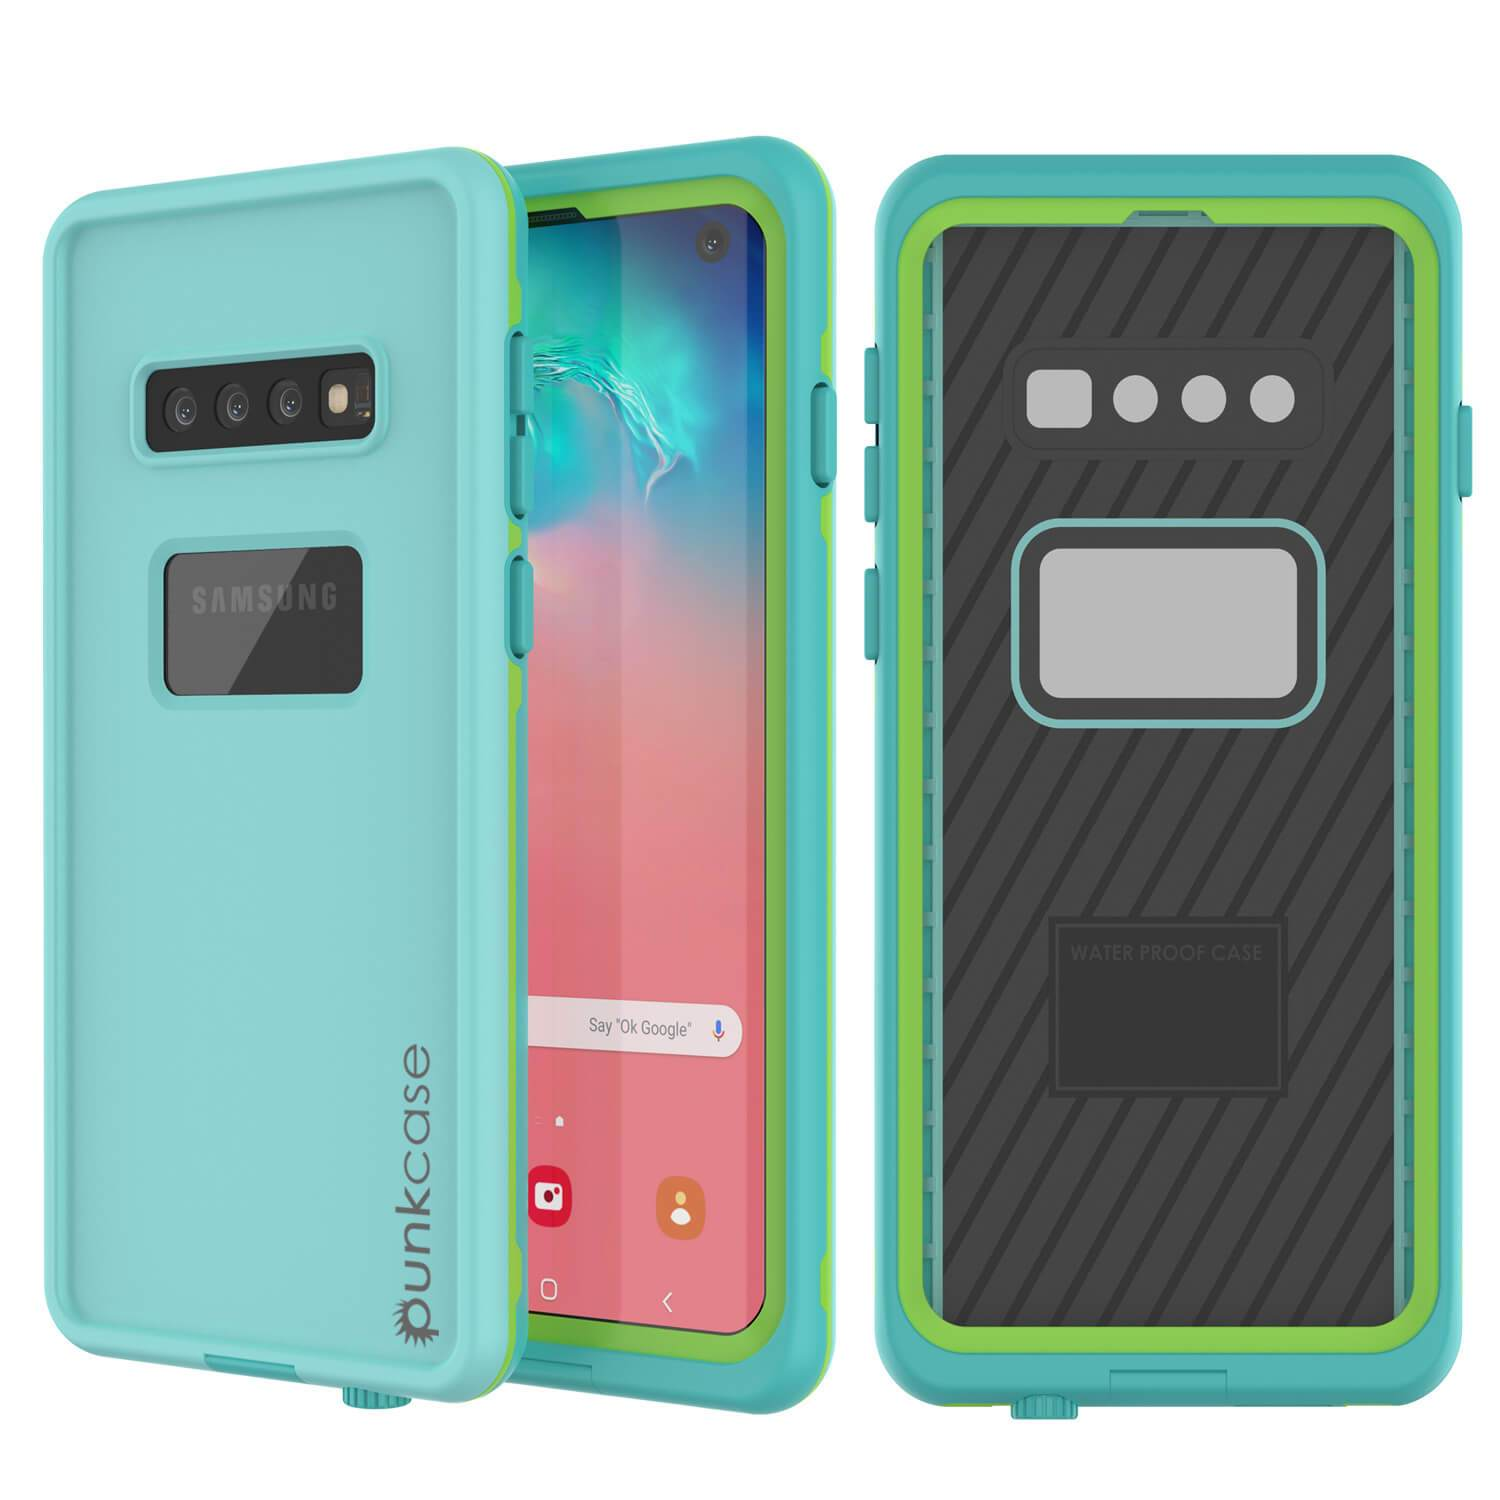 Punkcase S10 Waterproof Case [Aqua Series] Armor Cover [Teal]